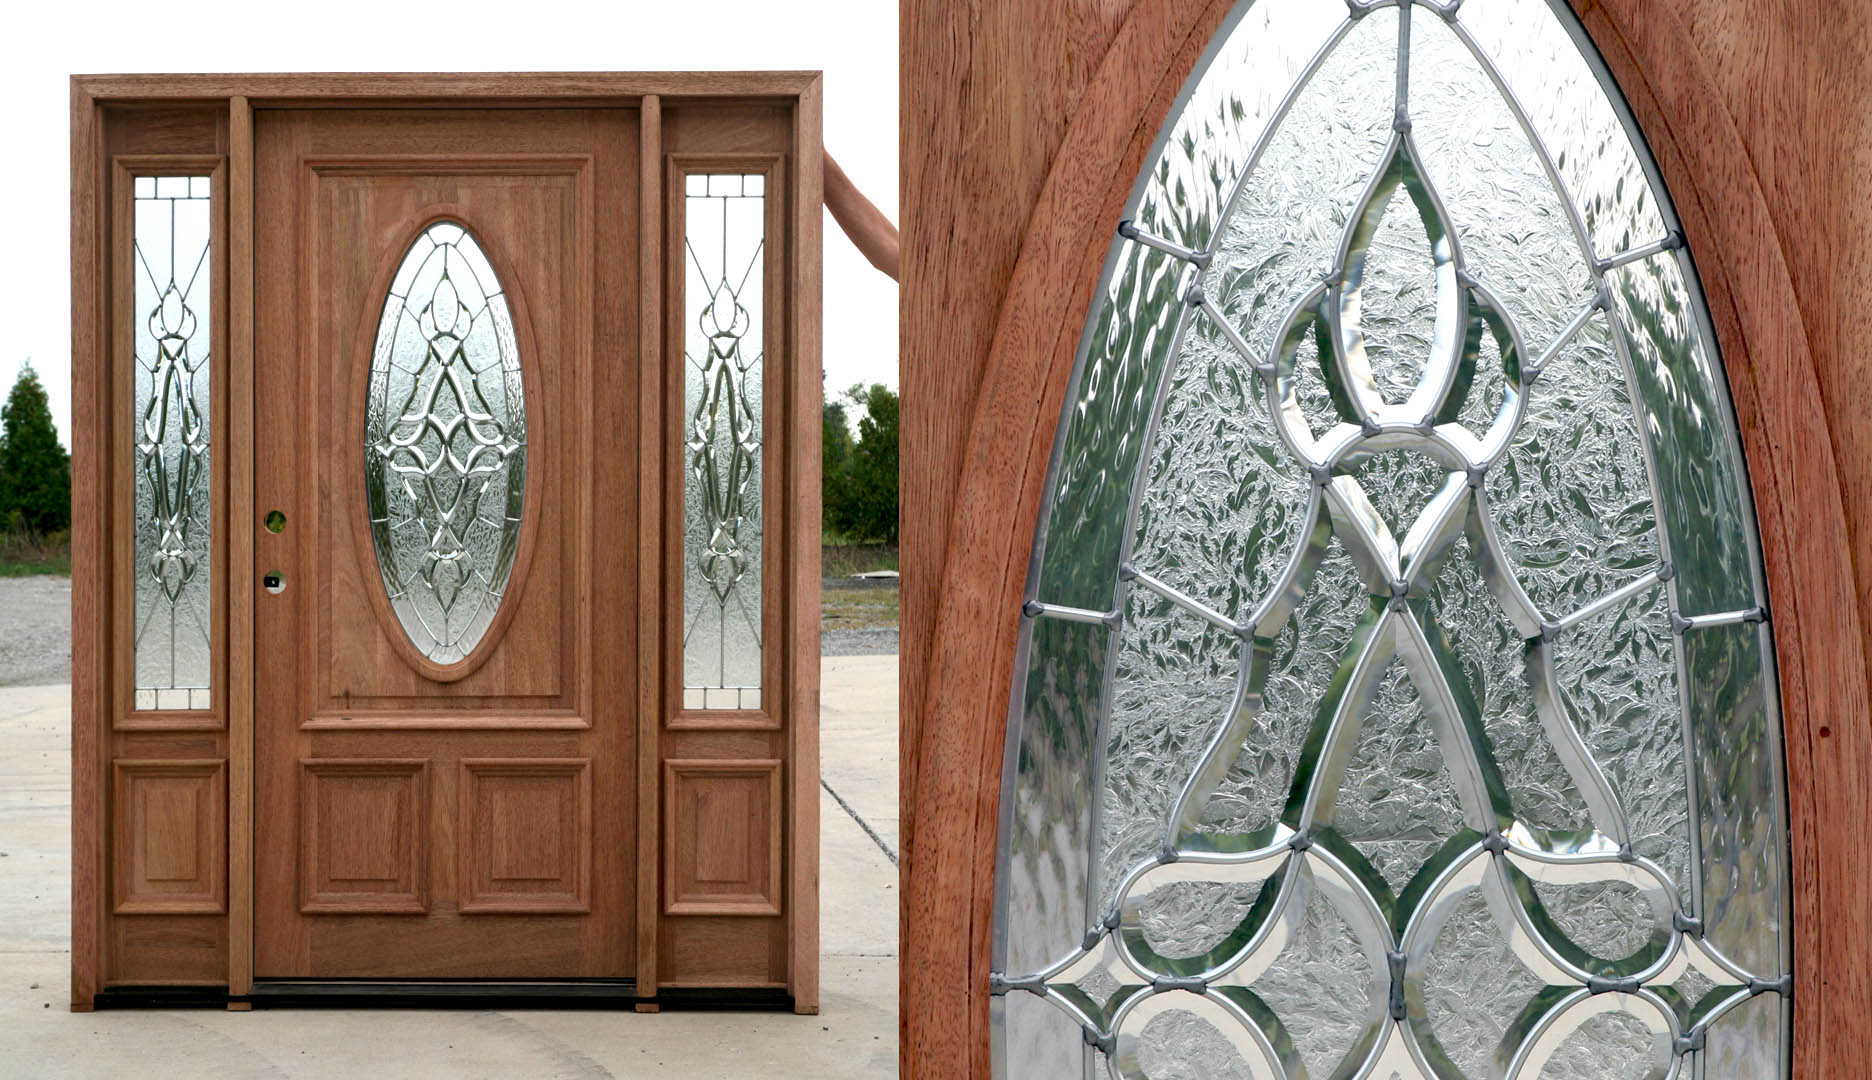 1080 #77472F Details About Mahogany Exterior Entry Door With Sidelights 300Shannon pic Clearance Entry Doors 44311872